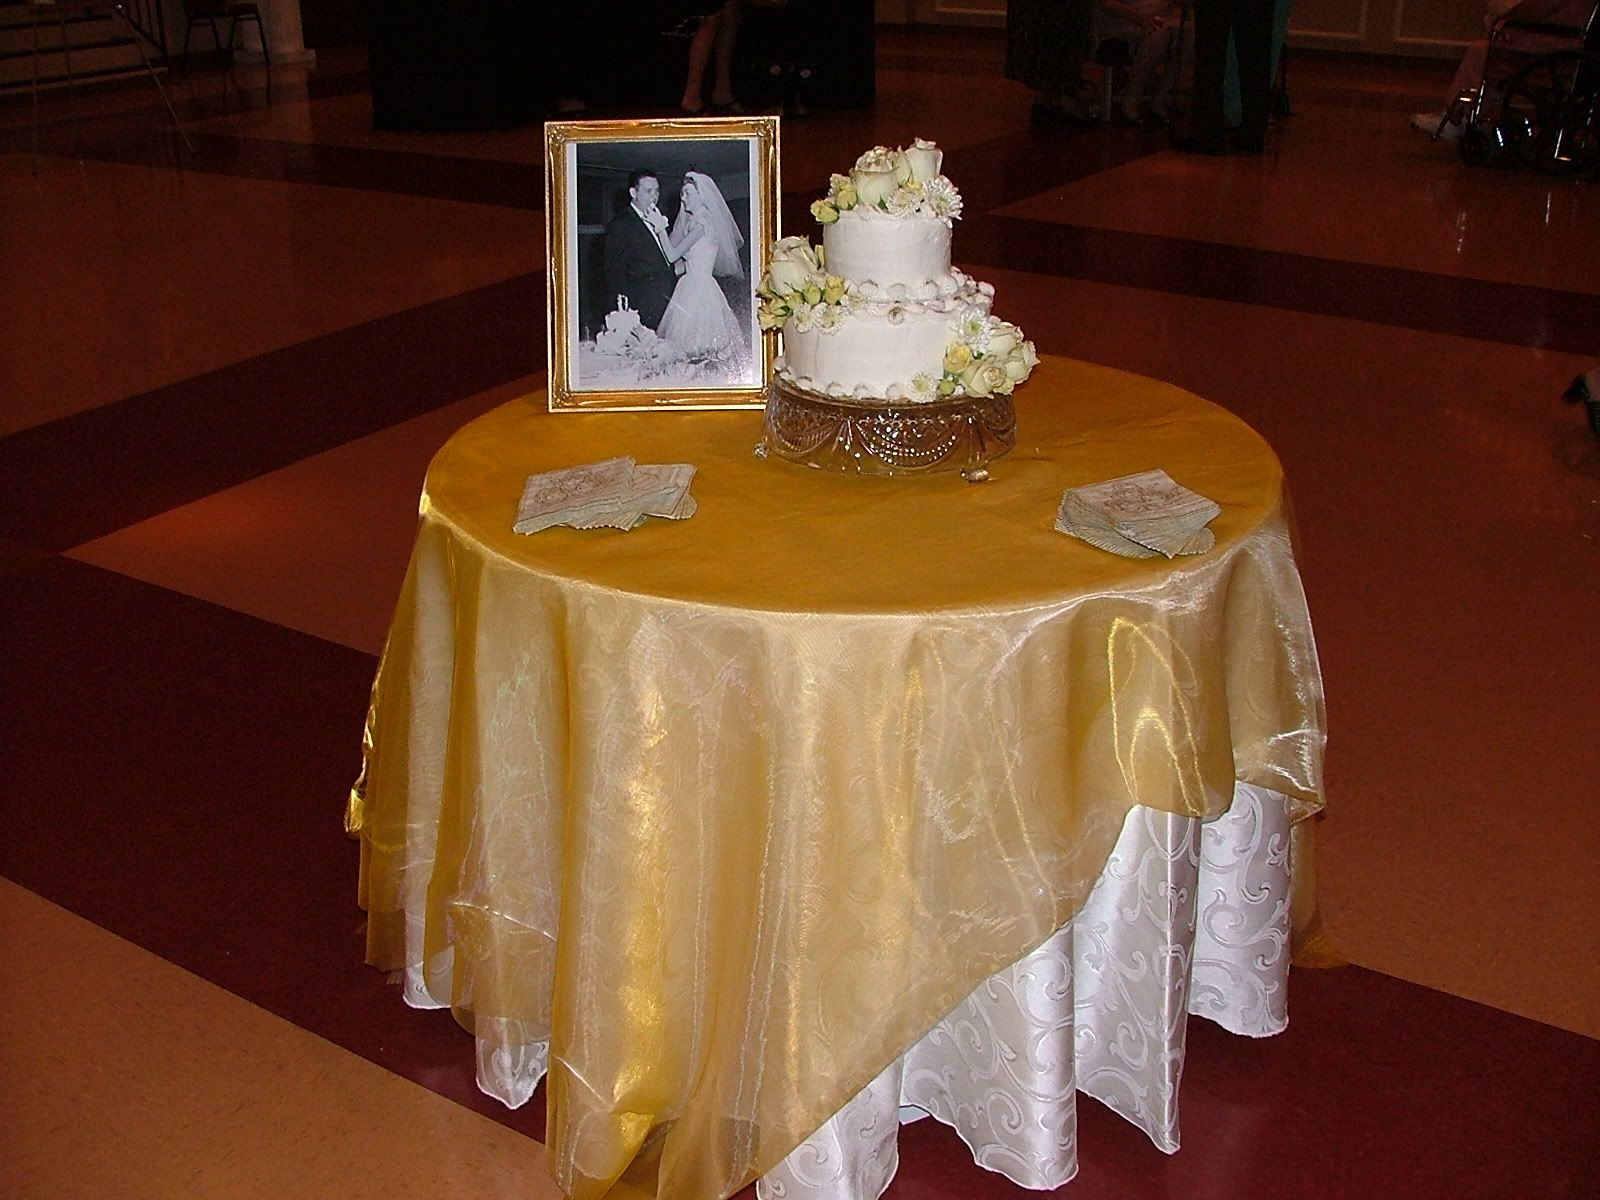 Simple enough. Love the cake stand in 2020 (With images